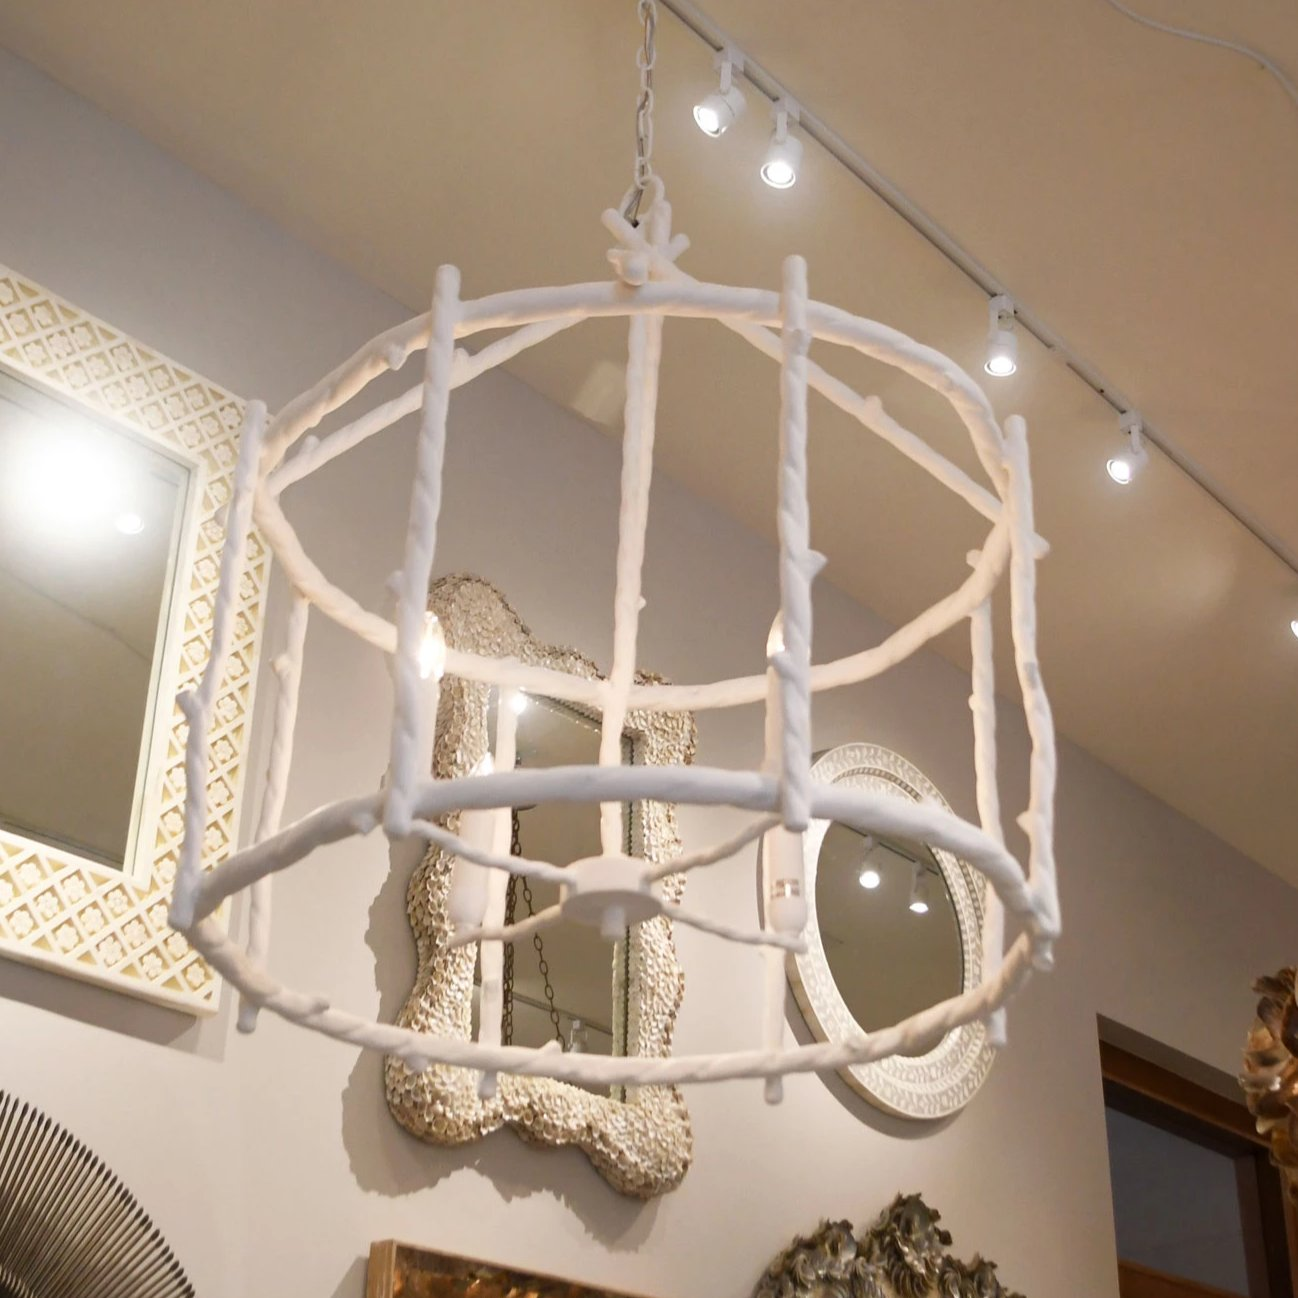 made goods trina twig chandelier round white metal pendant hanging light fixture